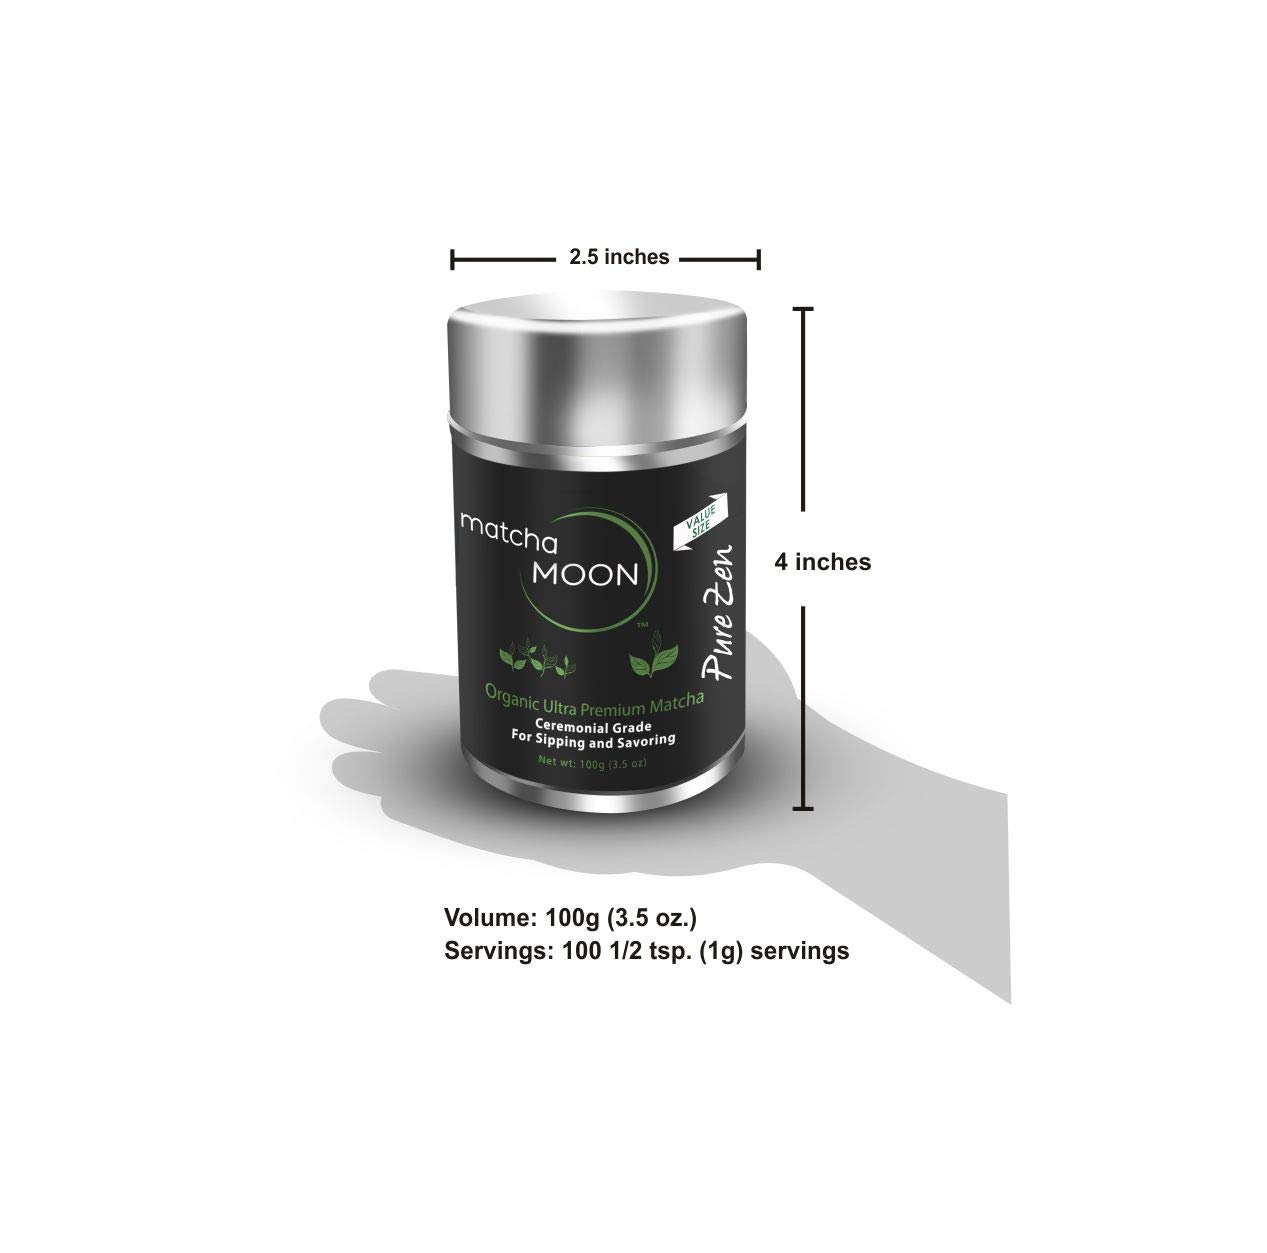 Matcha Moon - Organic Ceremonial Grade Japanese Matcha Green Tea Powder from Uji Kyoto Japan - Authentic, Premium, USDA Certified - Best For Traditionally Whisked Tea - Pure Zen - Value Size 100g Tin by Matcha Moon (Image #7)